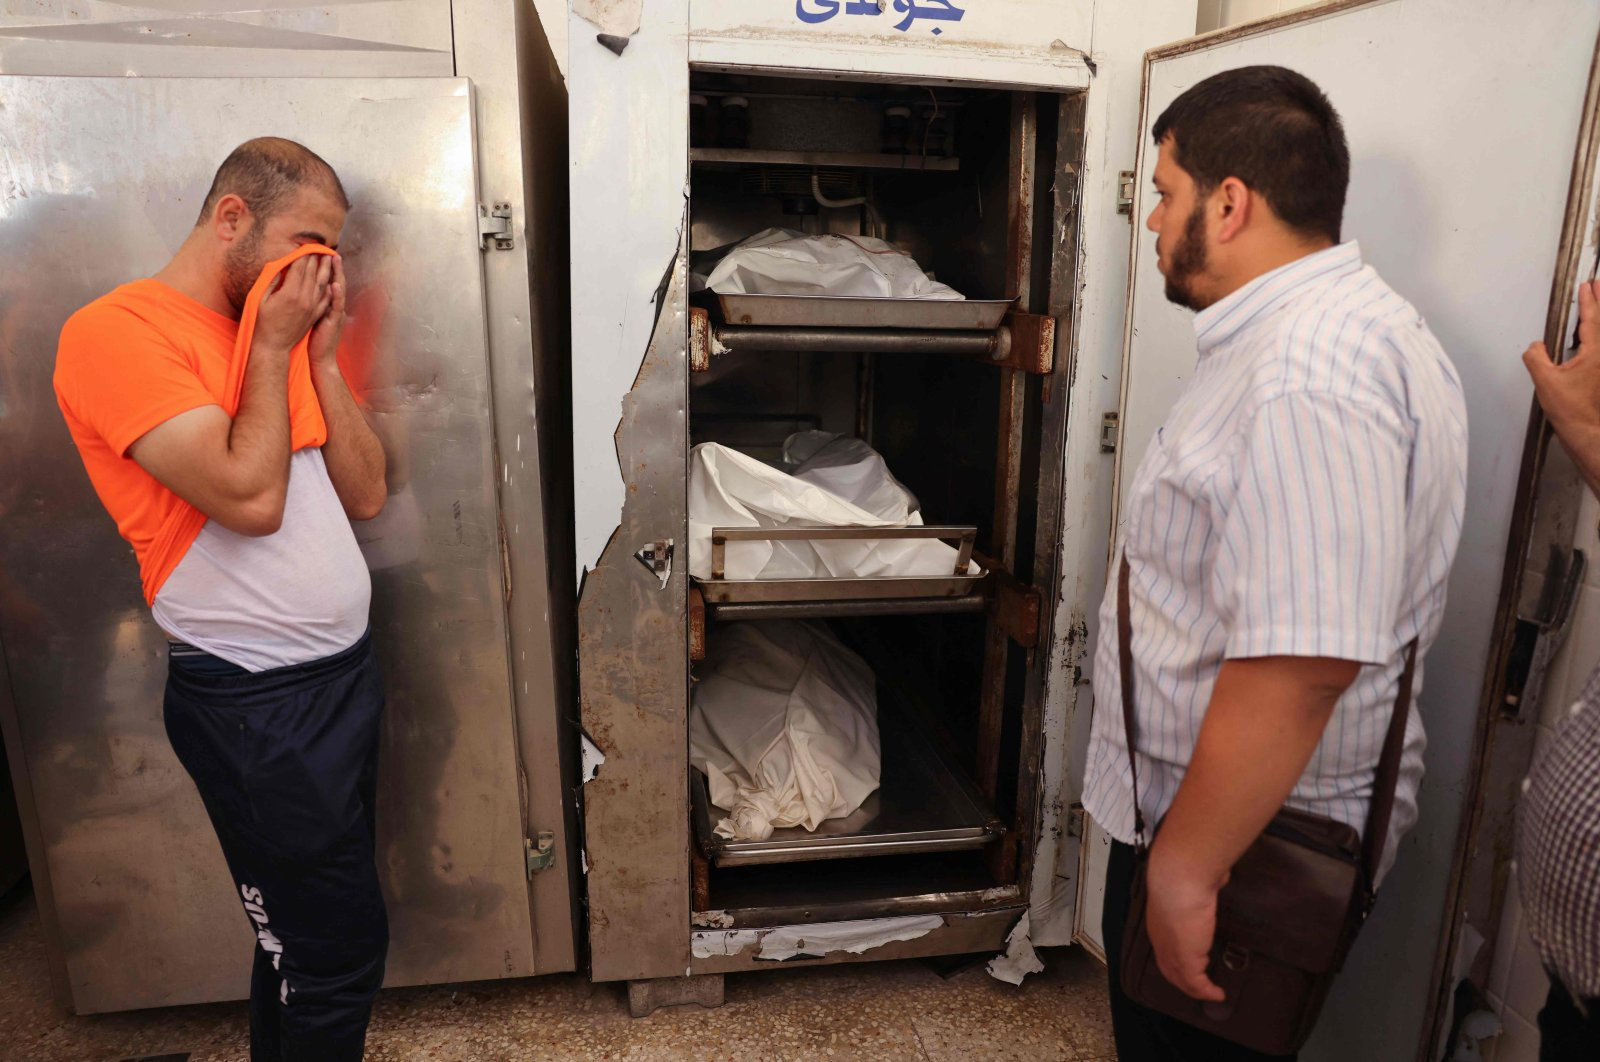 A brother weeps in front of the corpses at the morgue, where Iyad, a 33-year-old wheelchair-bound Palestinian man killed in his house along with his pregnant wife and their 3-year-old daughter during an Israeli airstrike, were trasported, Deir el-Balah, Gaza Strip, Palestine. (AFP Photo)